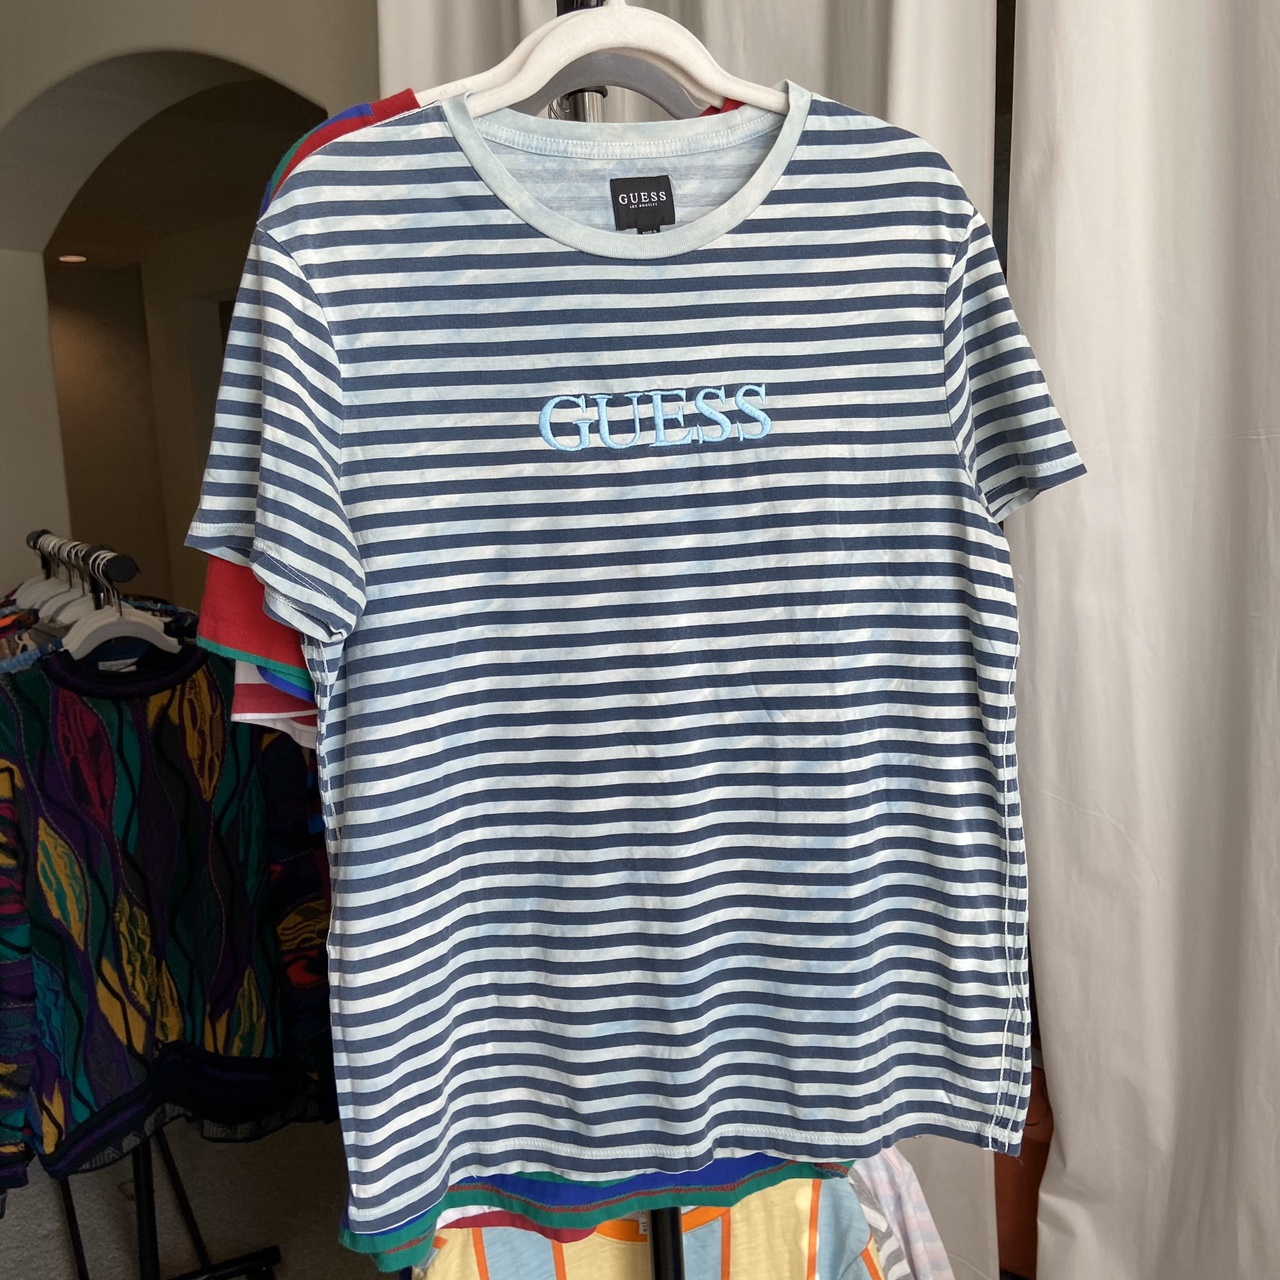 Product Image 1 - Vintage guess tshirt Striped design with